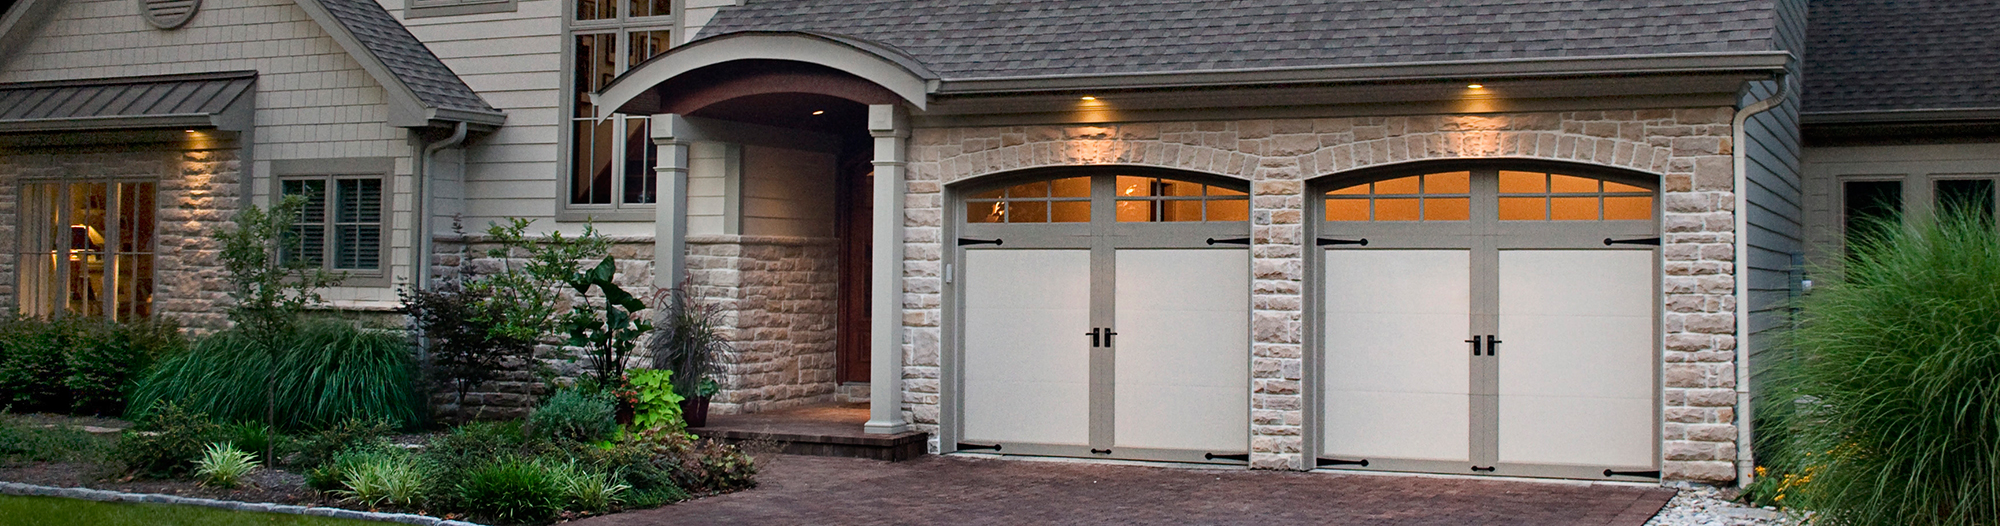 Garage Door Repair Woodstock Get Reliable Garage Door